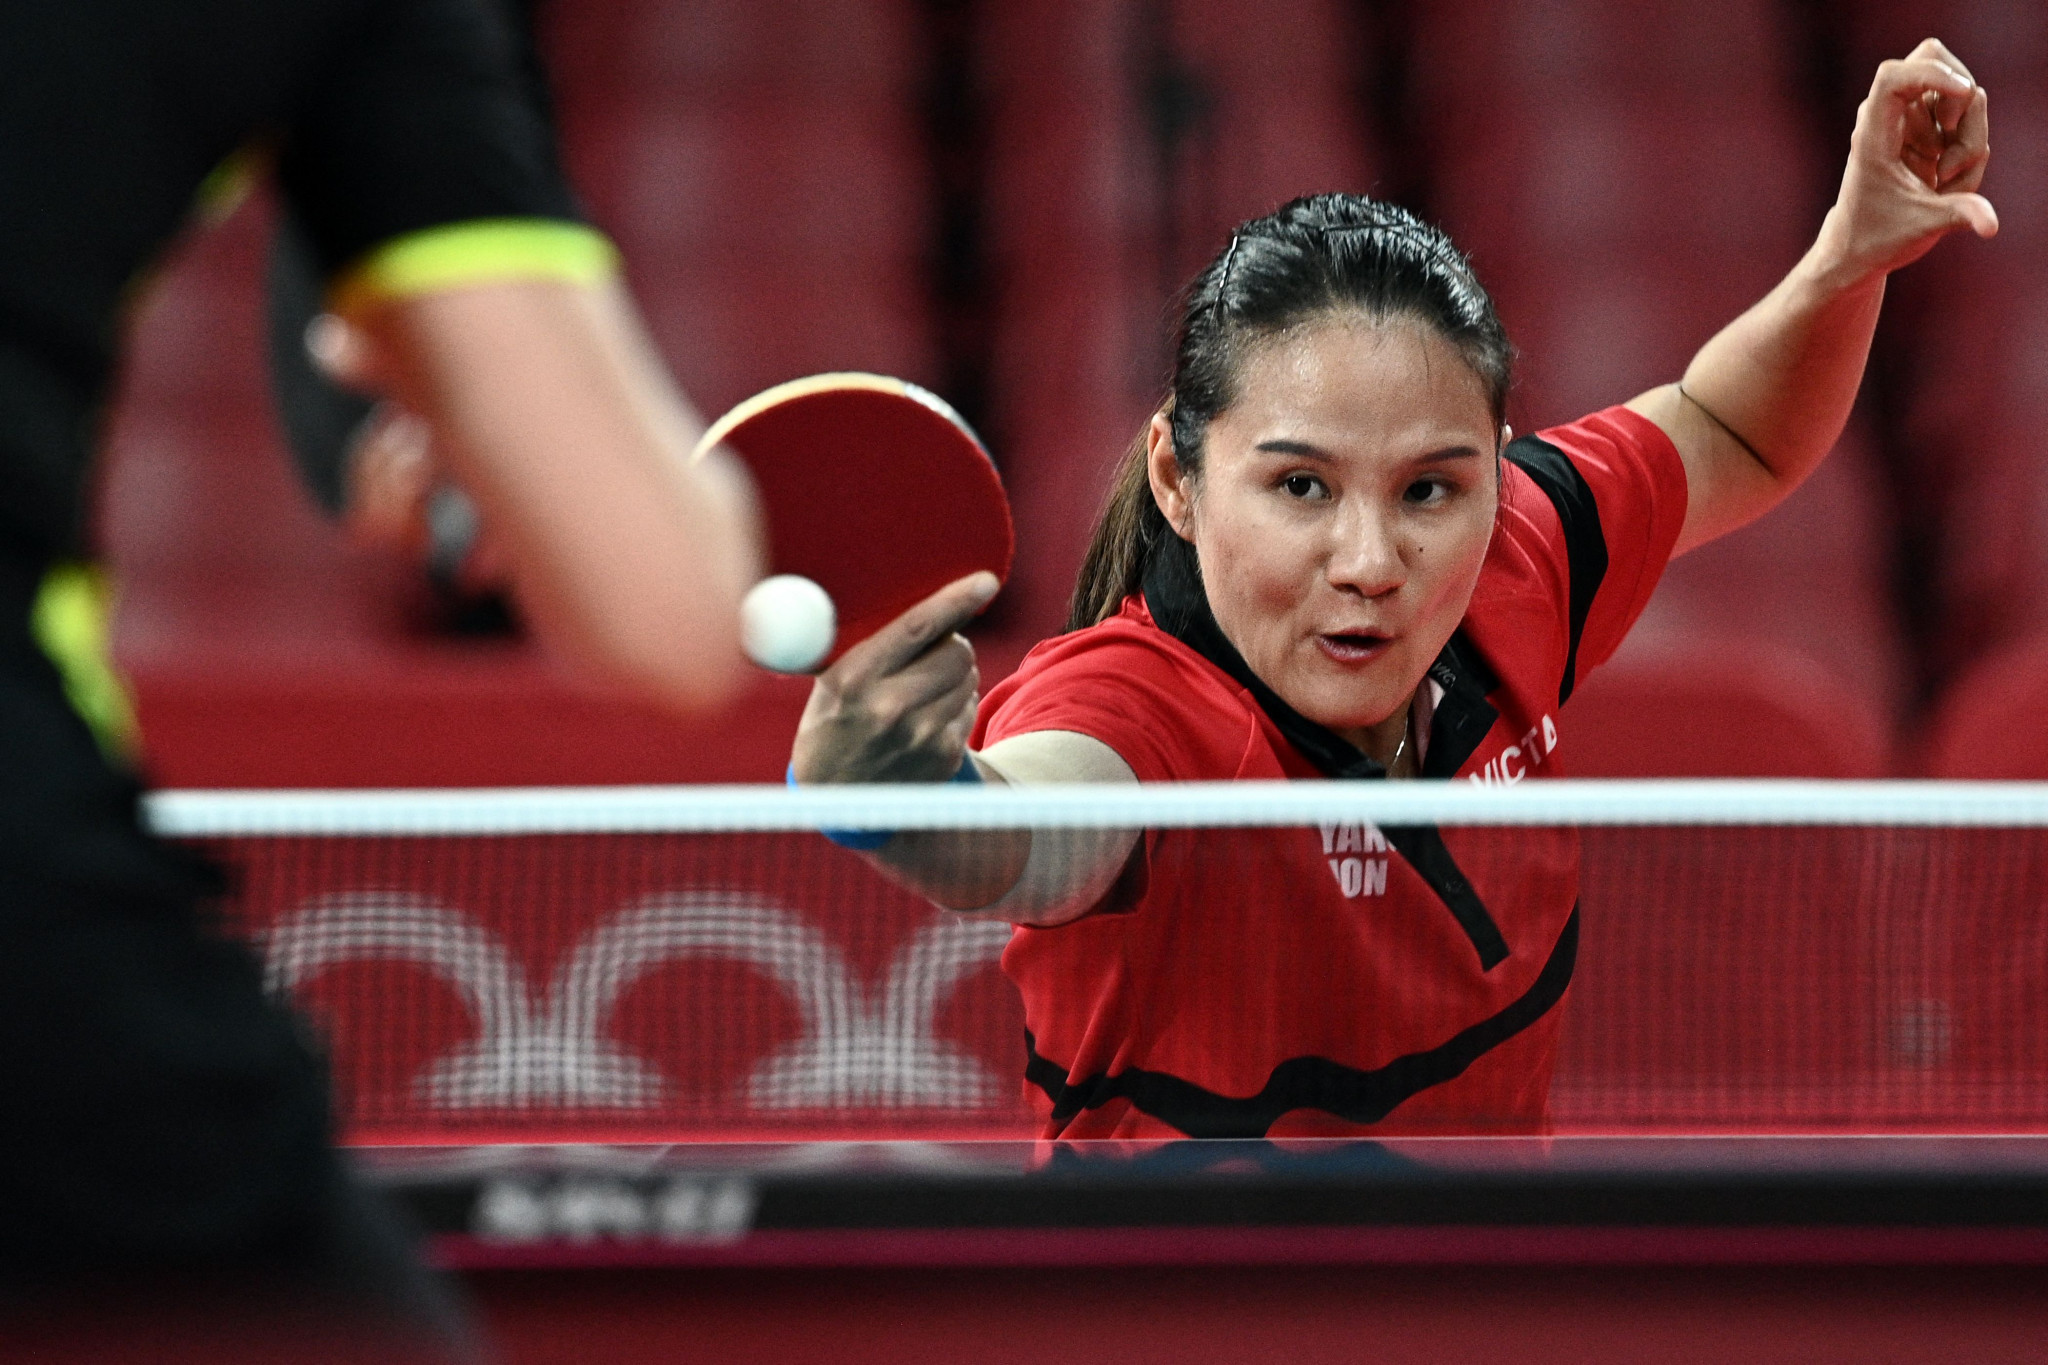 Top seeds Pitchford and Yang safely through to quarter-finals at WTT Contender Budapest